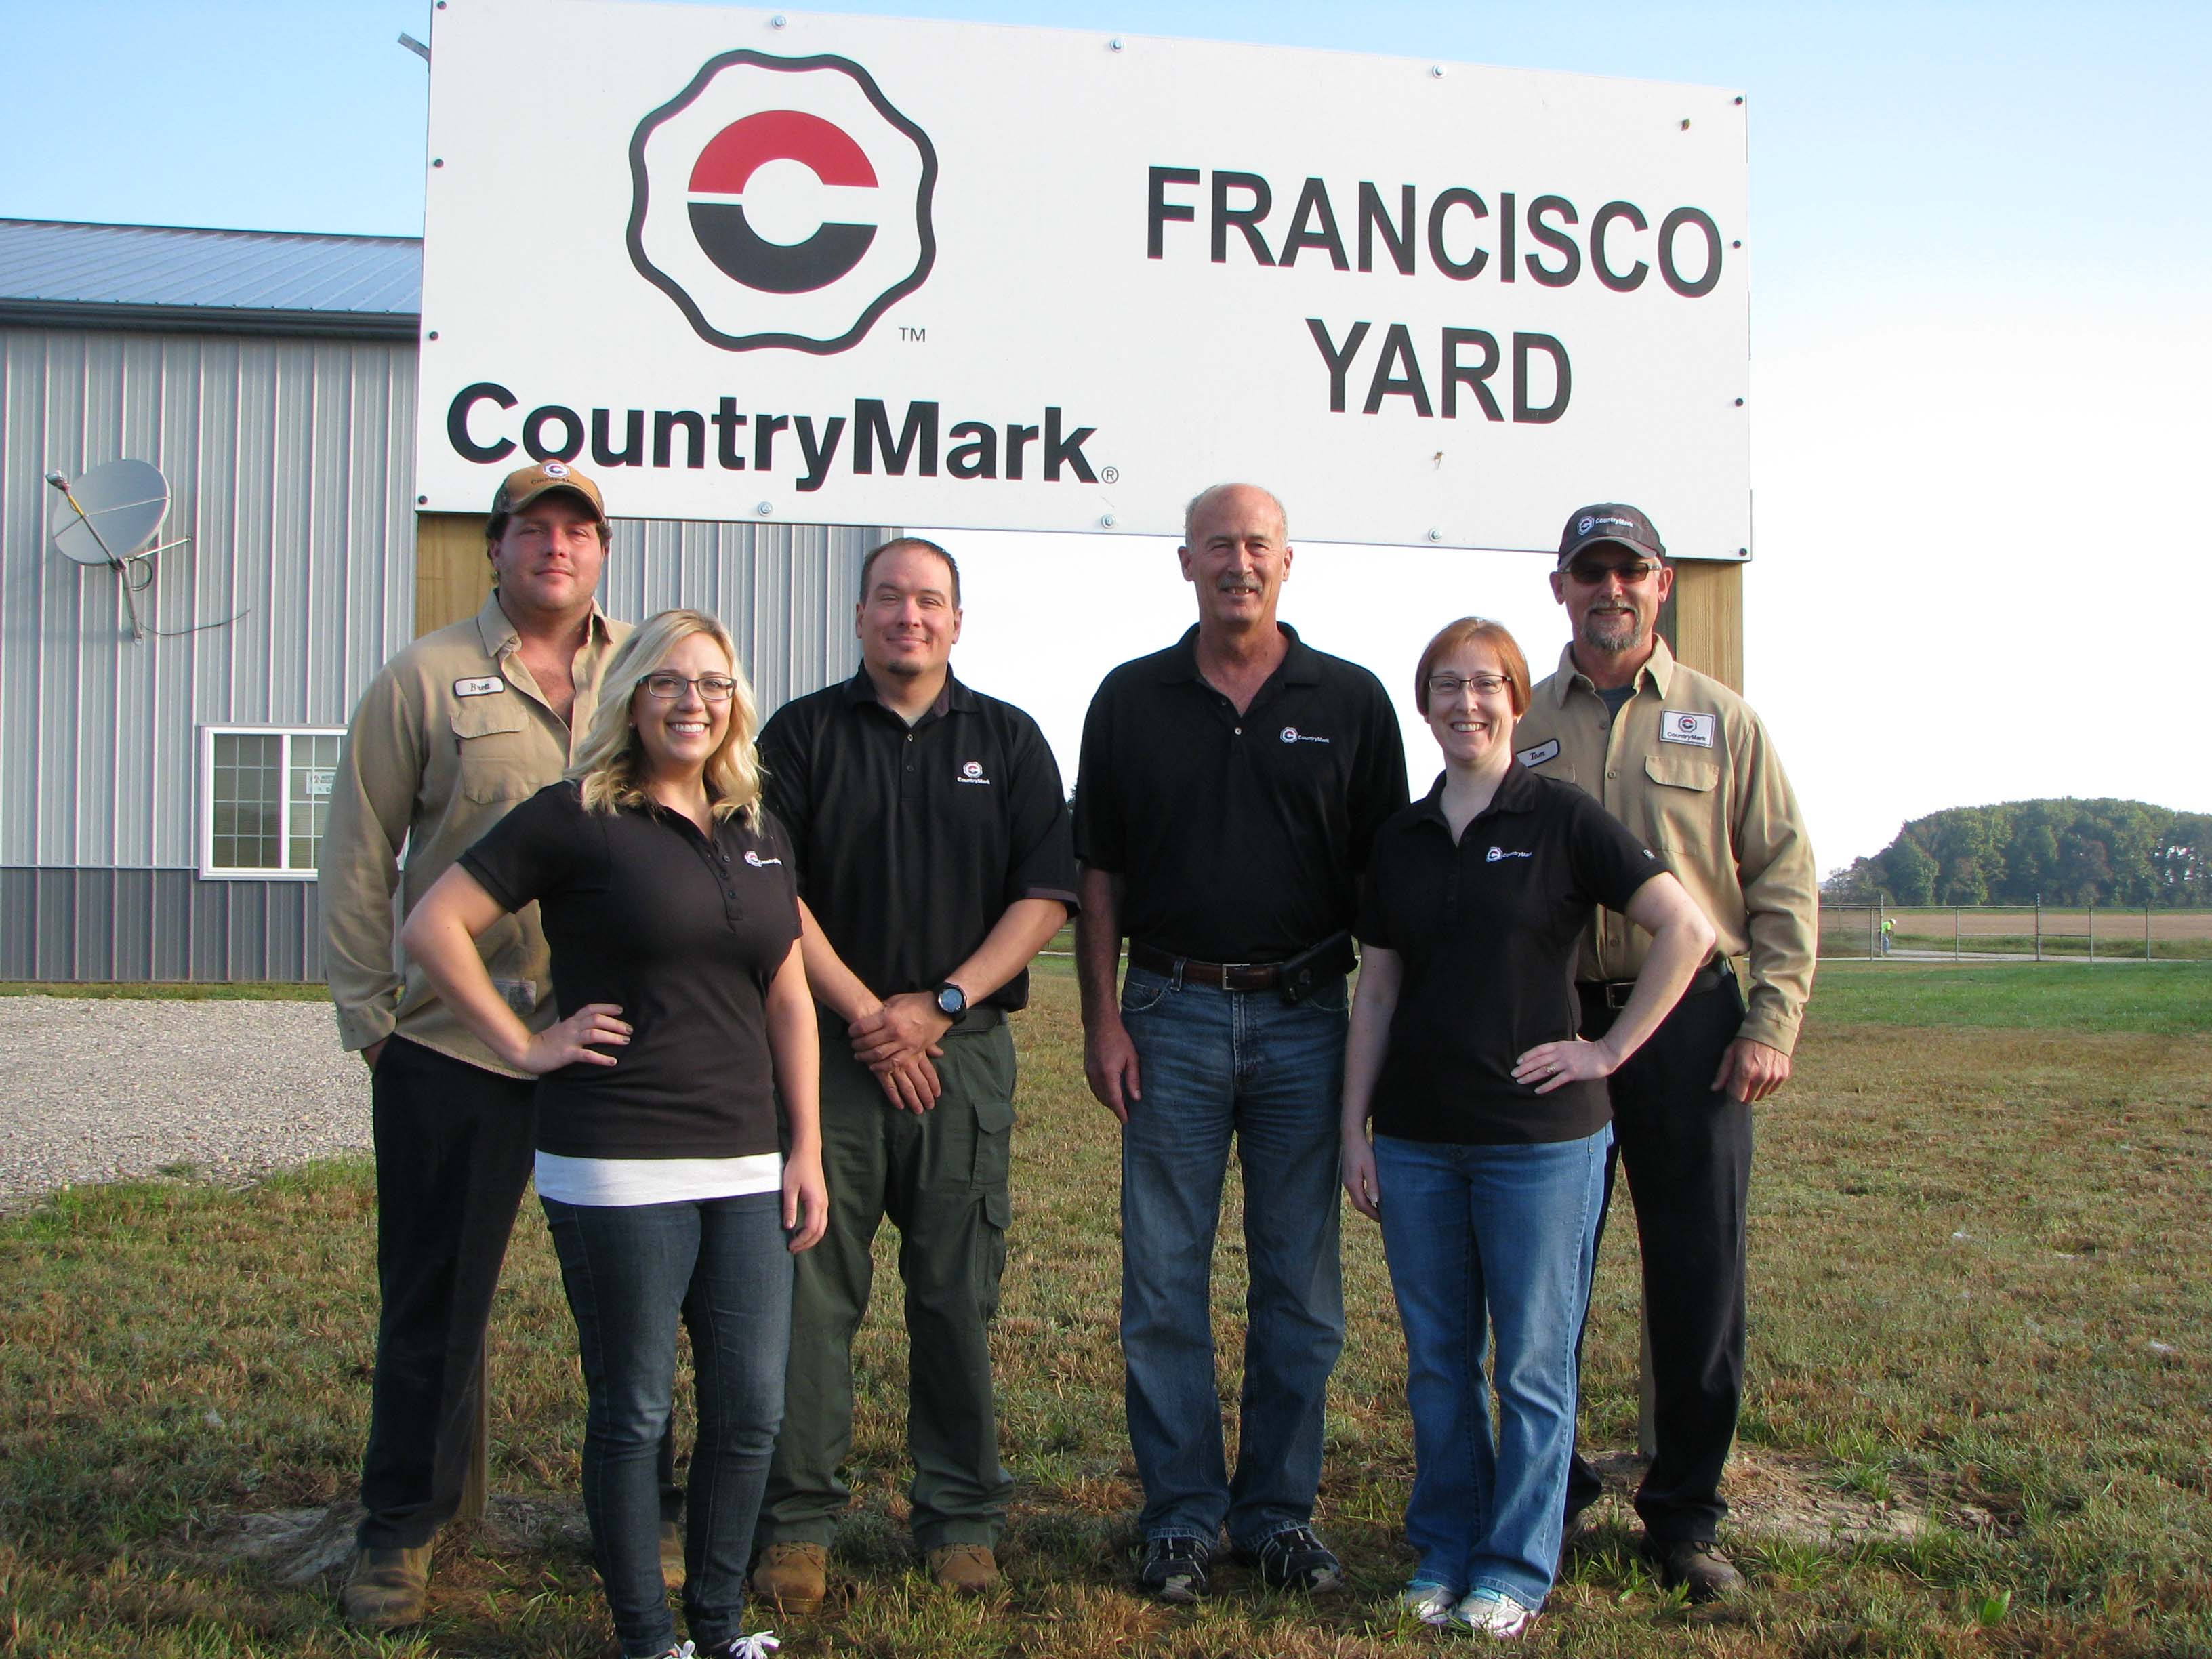 Indiana gibson county francisco - Countrymark S Francisco Yard Won The Indiana Oil And Gas Association Facility Of The Year Award Pictured At The Award Winning Facility Are Countrymark